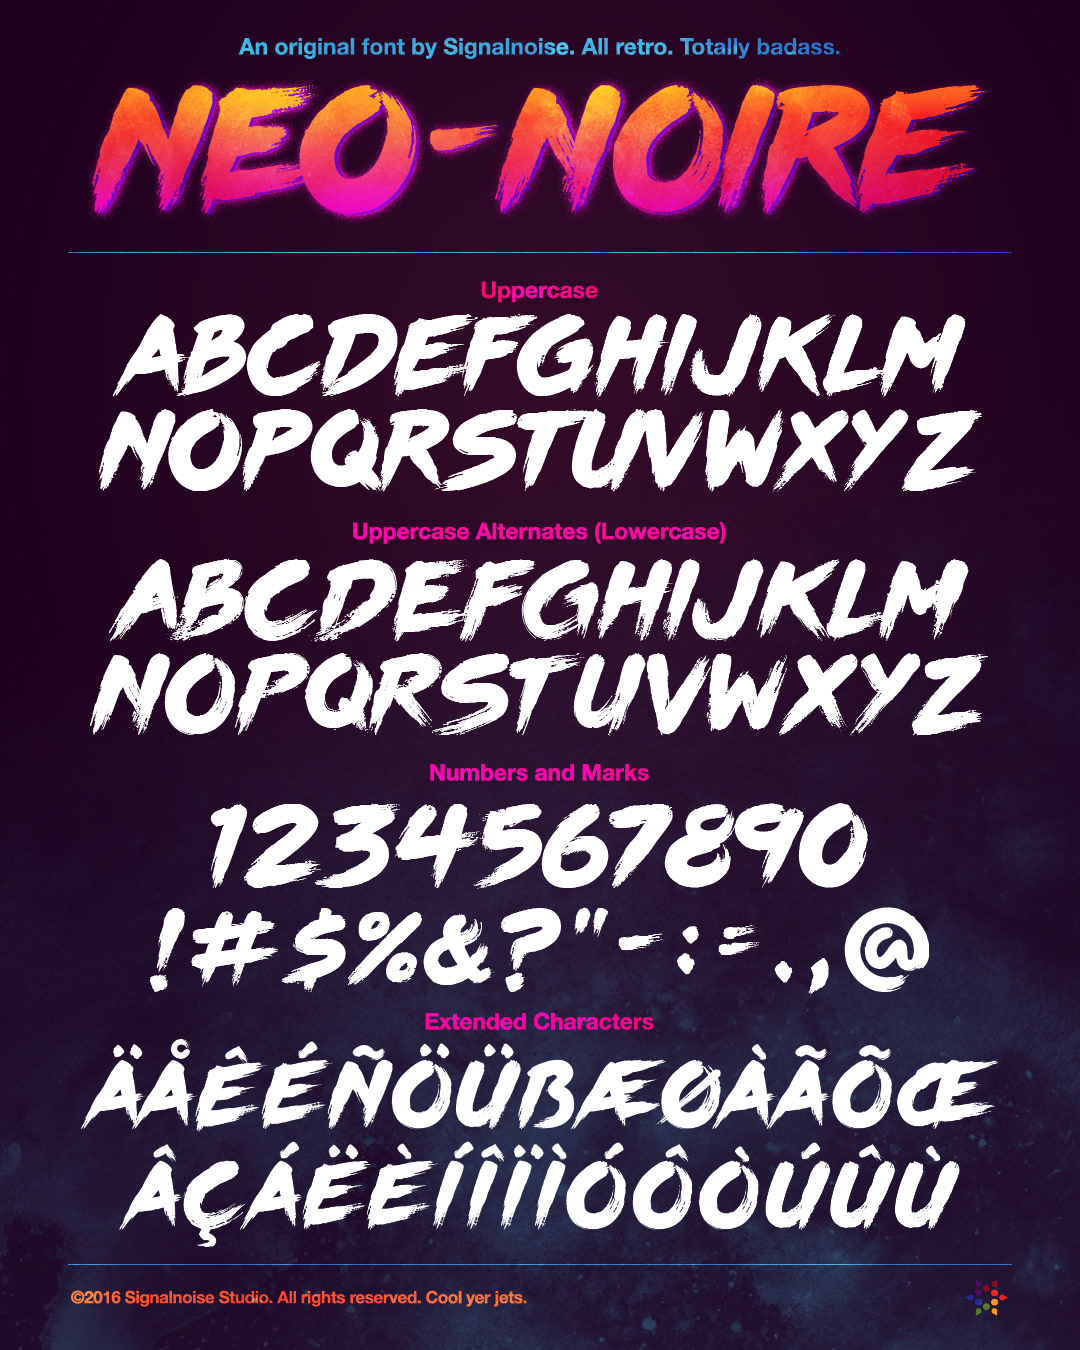 Signalnoise The Work Of James White Neo Noire Font